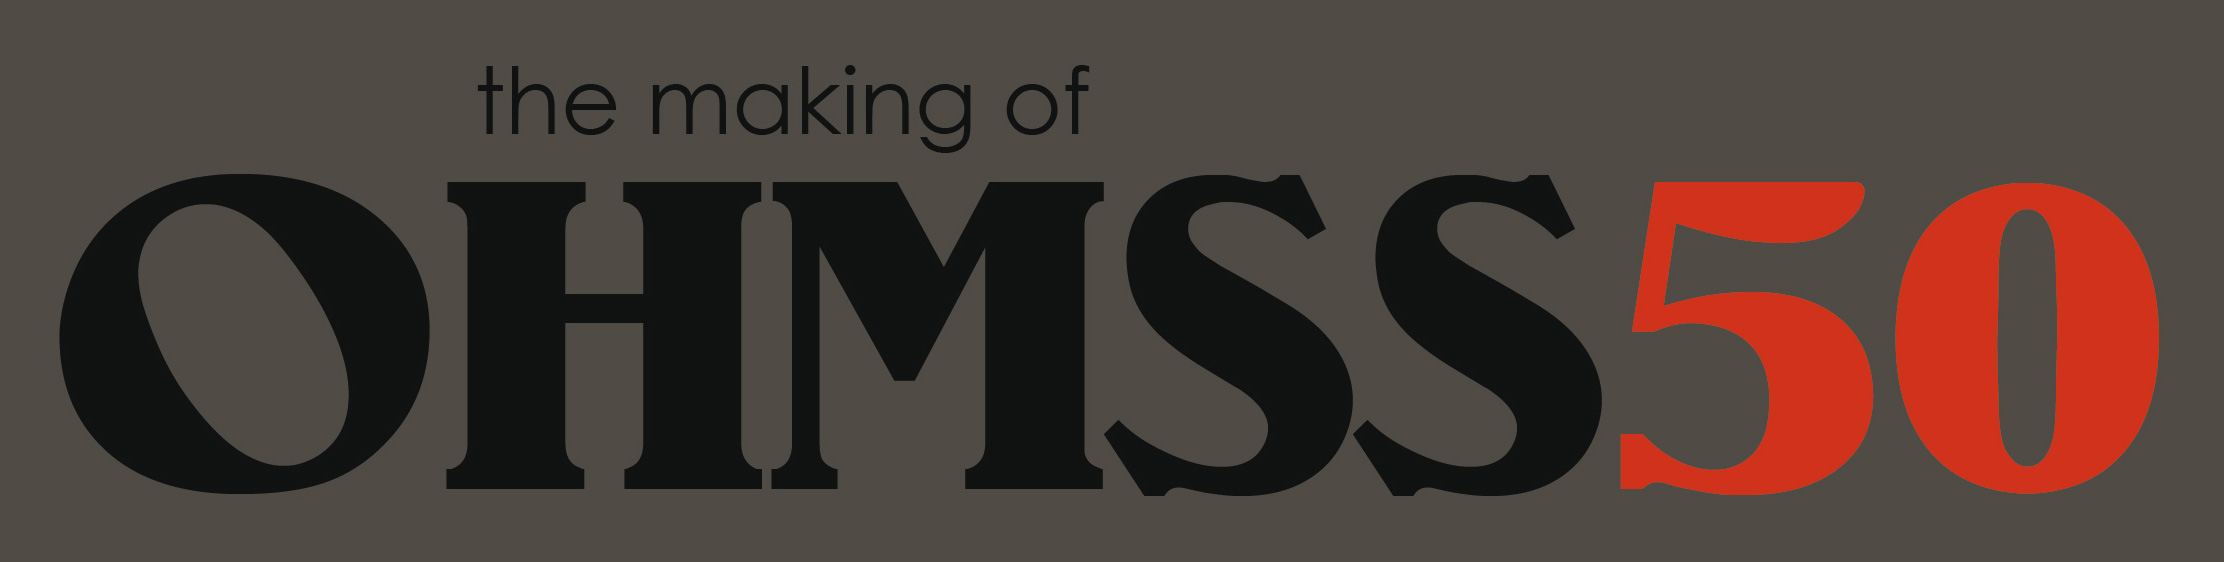 The Making of OHMSS50 logo